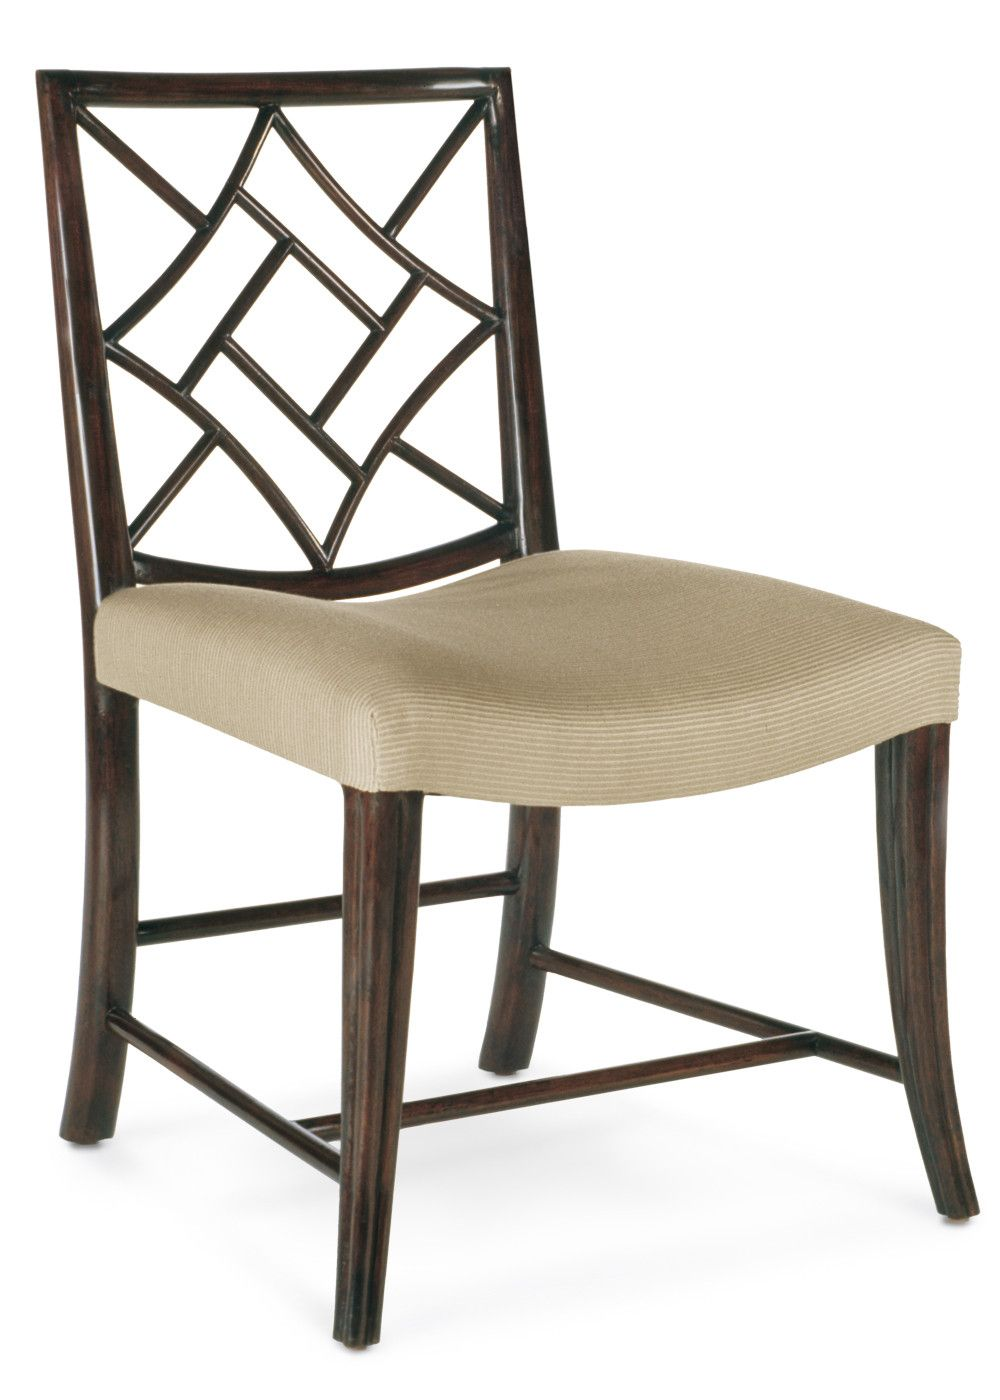 Chinese Chippendale Side Chair (#1004 S) By Dessin Fournir | Dining Chairs